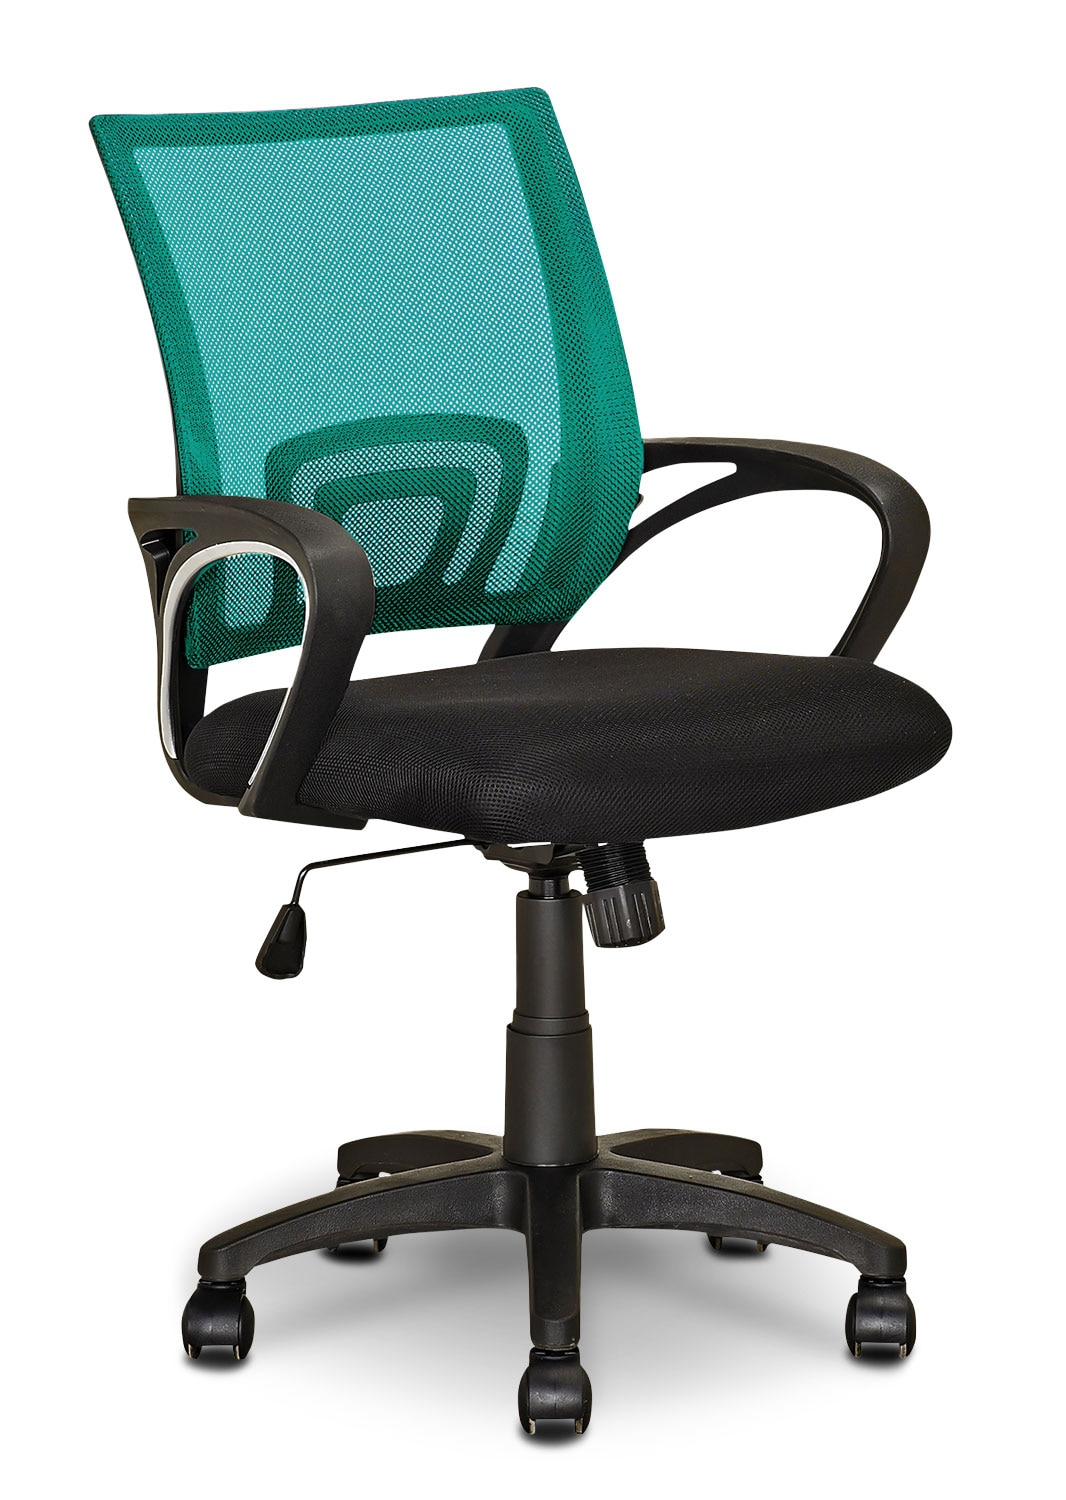 Loft Mesh Office Chair – Teal